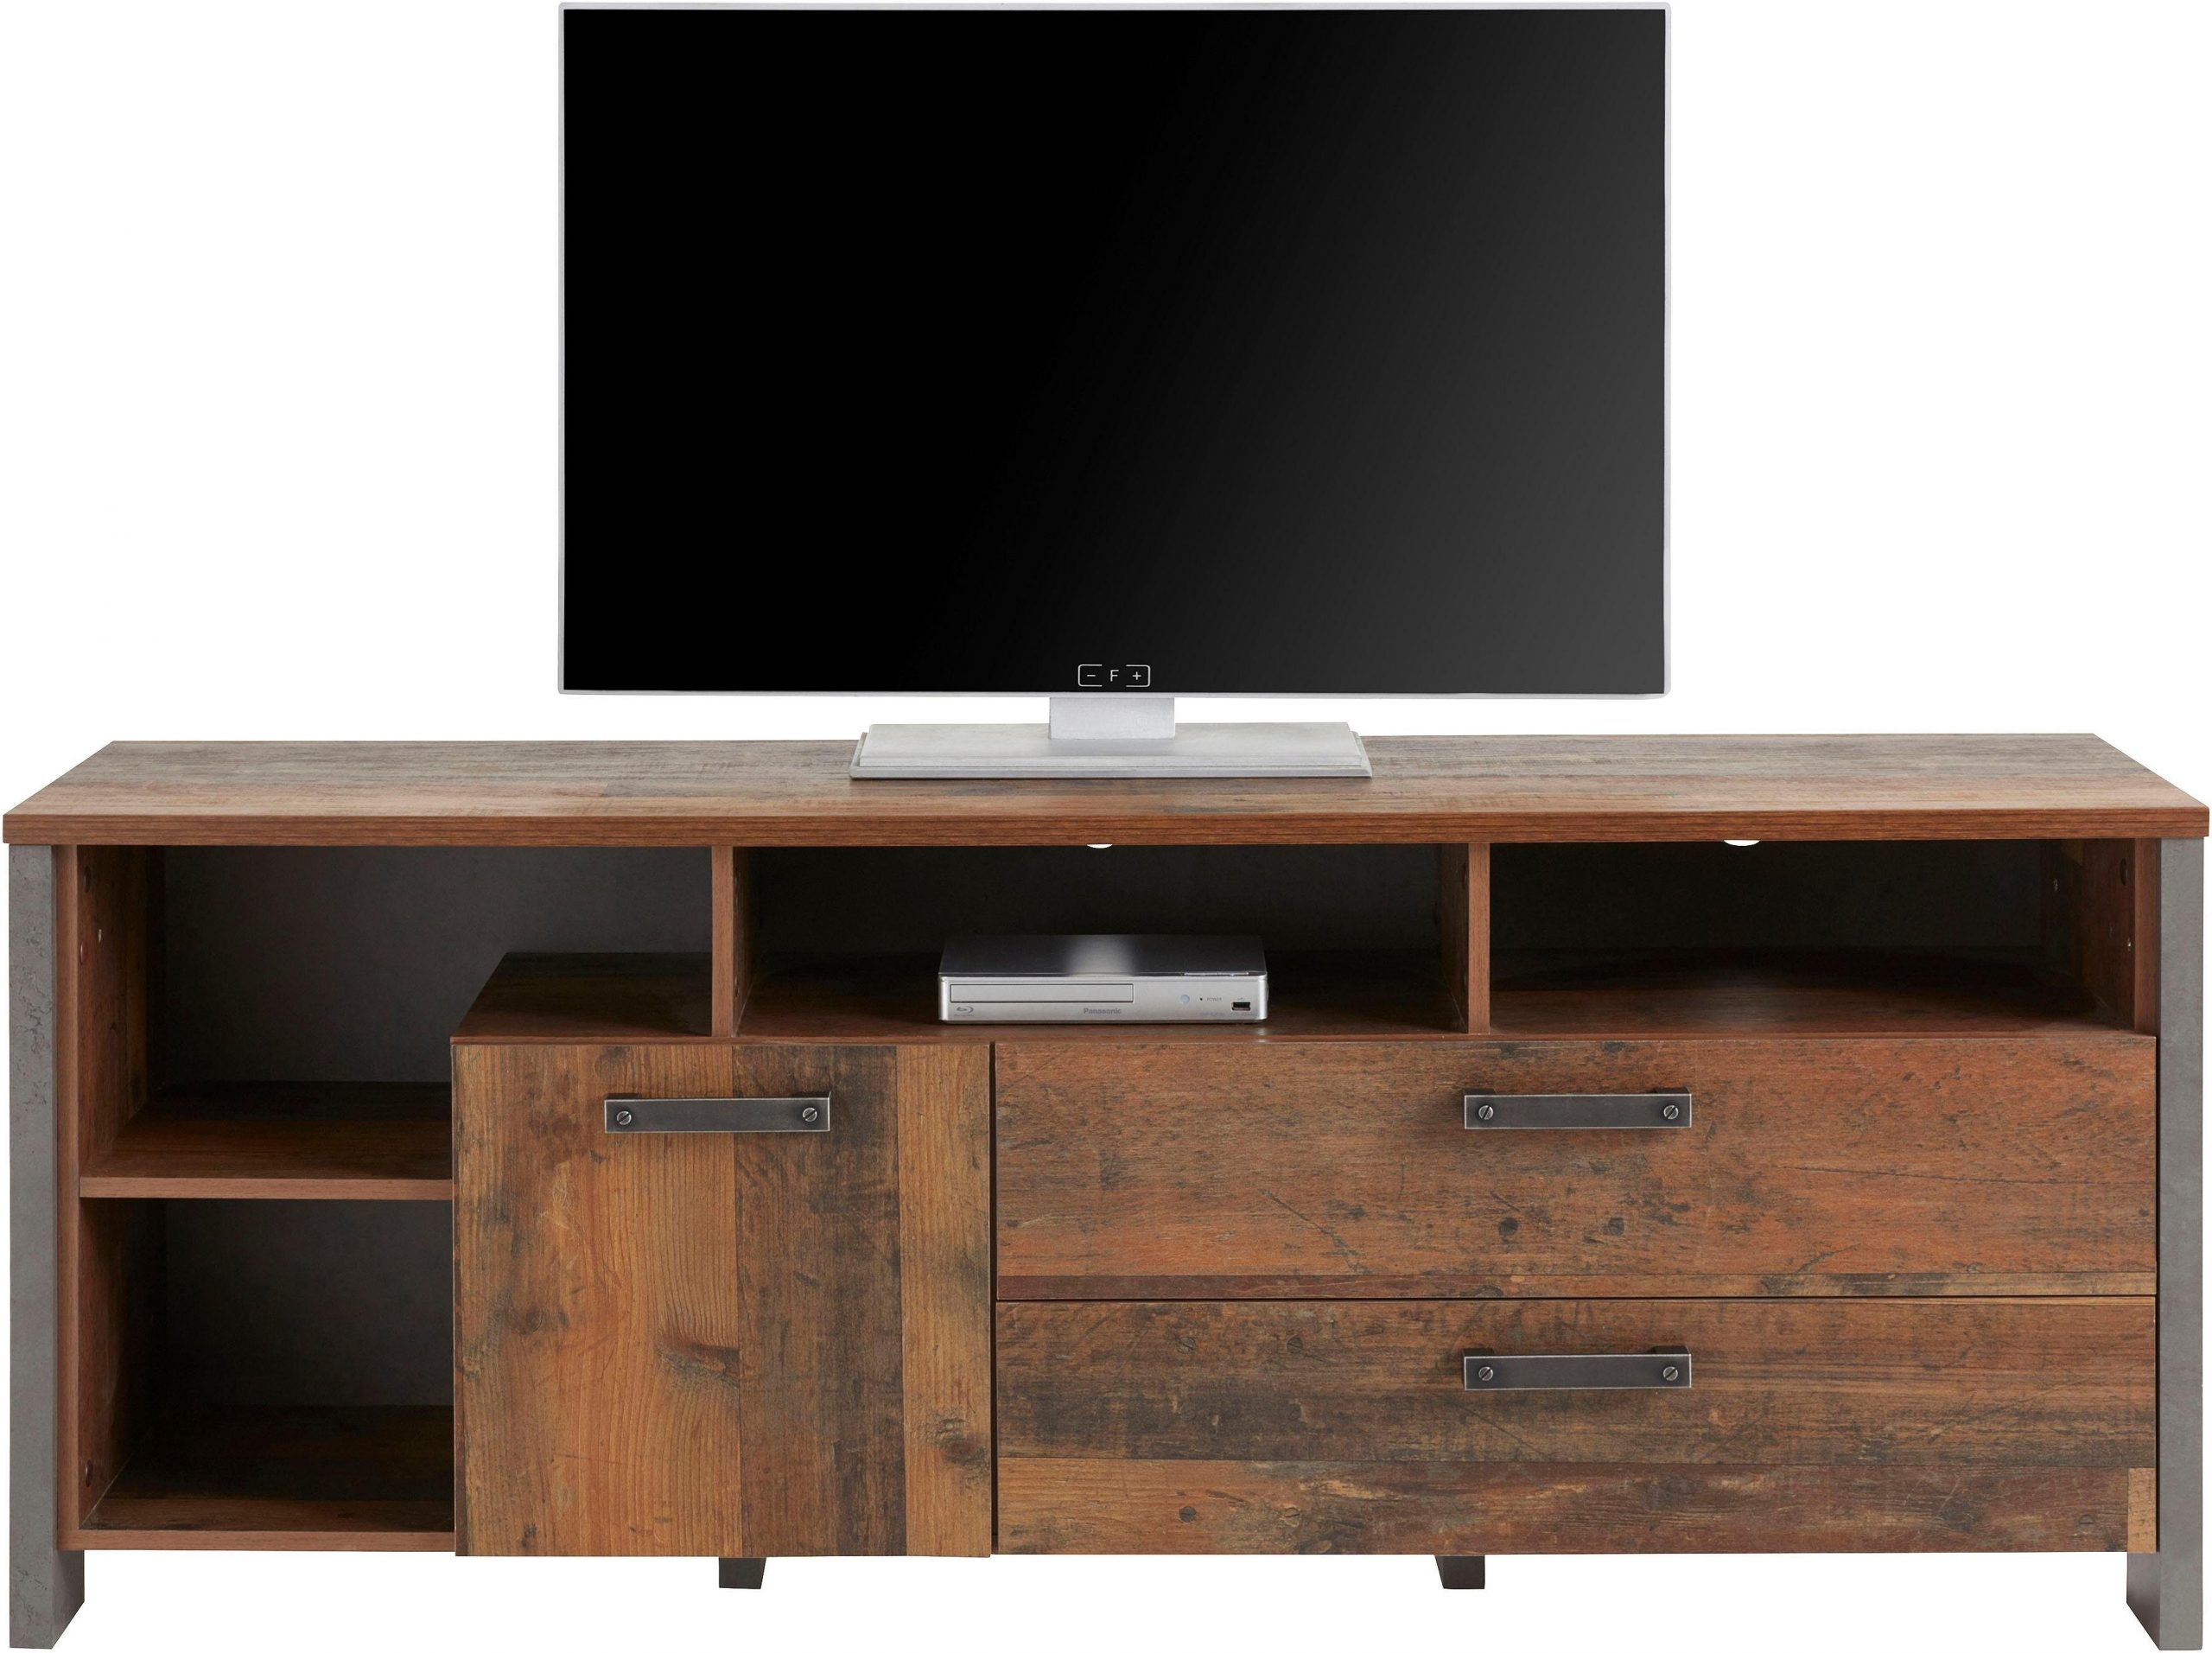 "160 CM / Max. TV Formaat: 65""<br><strong>+ € 9,95</strong>"